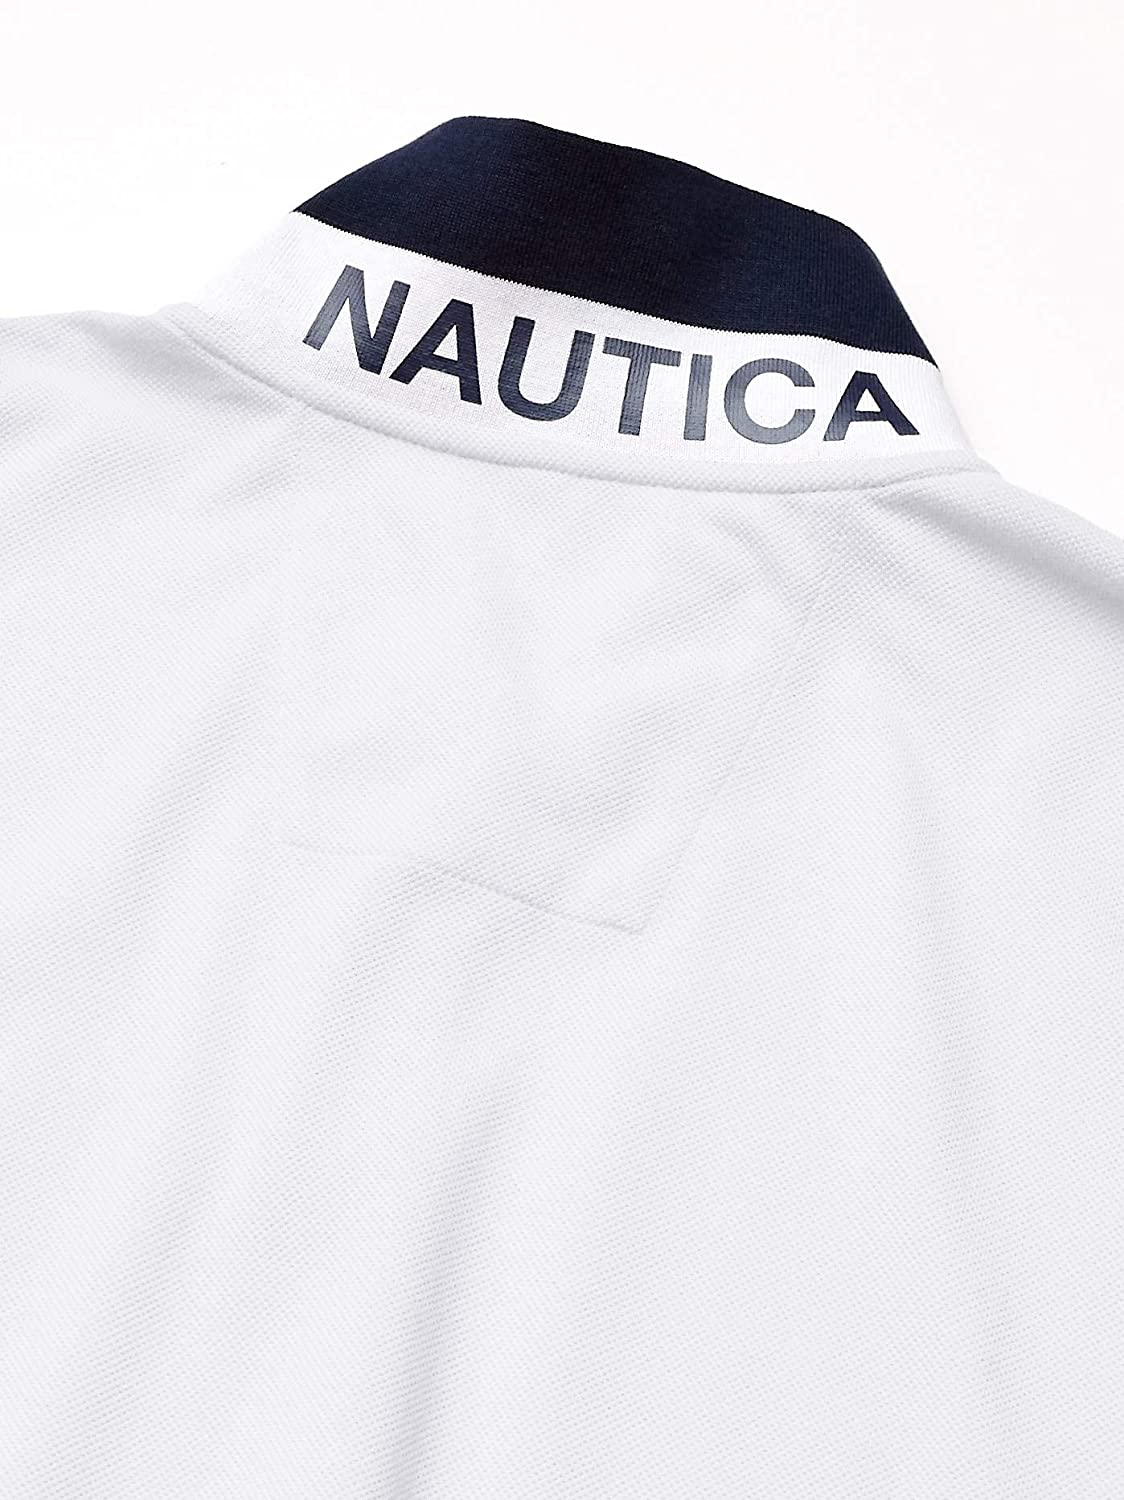 Nautica Mens Classic Fit Short Sleeve Performance Pique Polo Shirt Polo Shirt